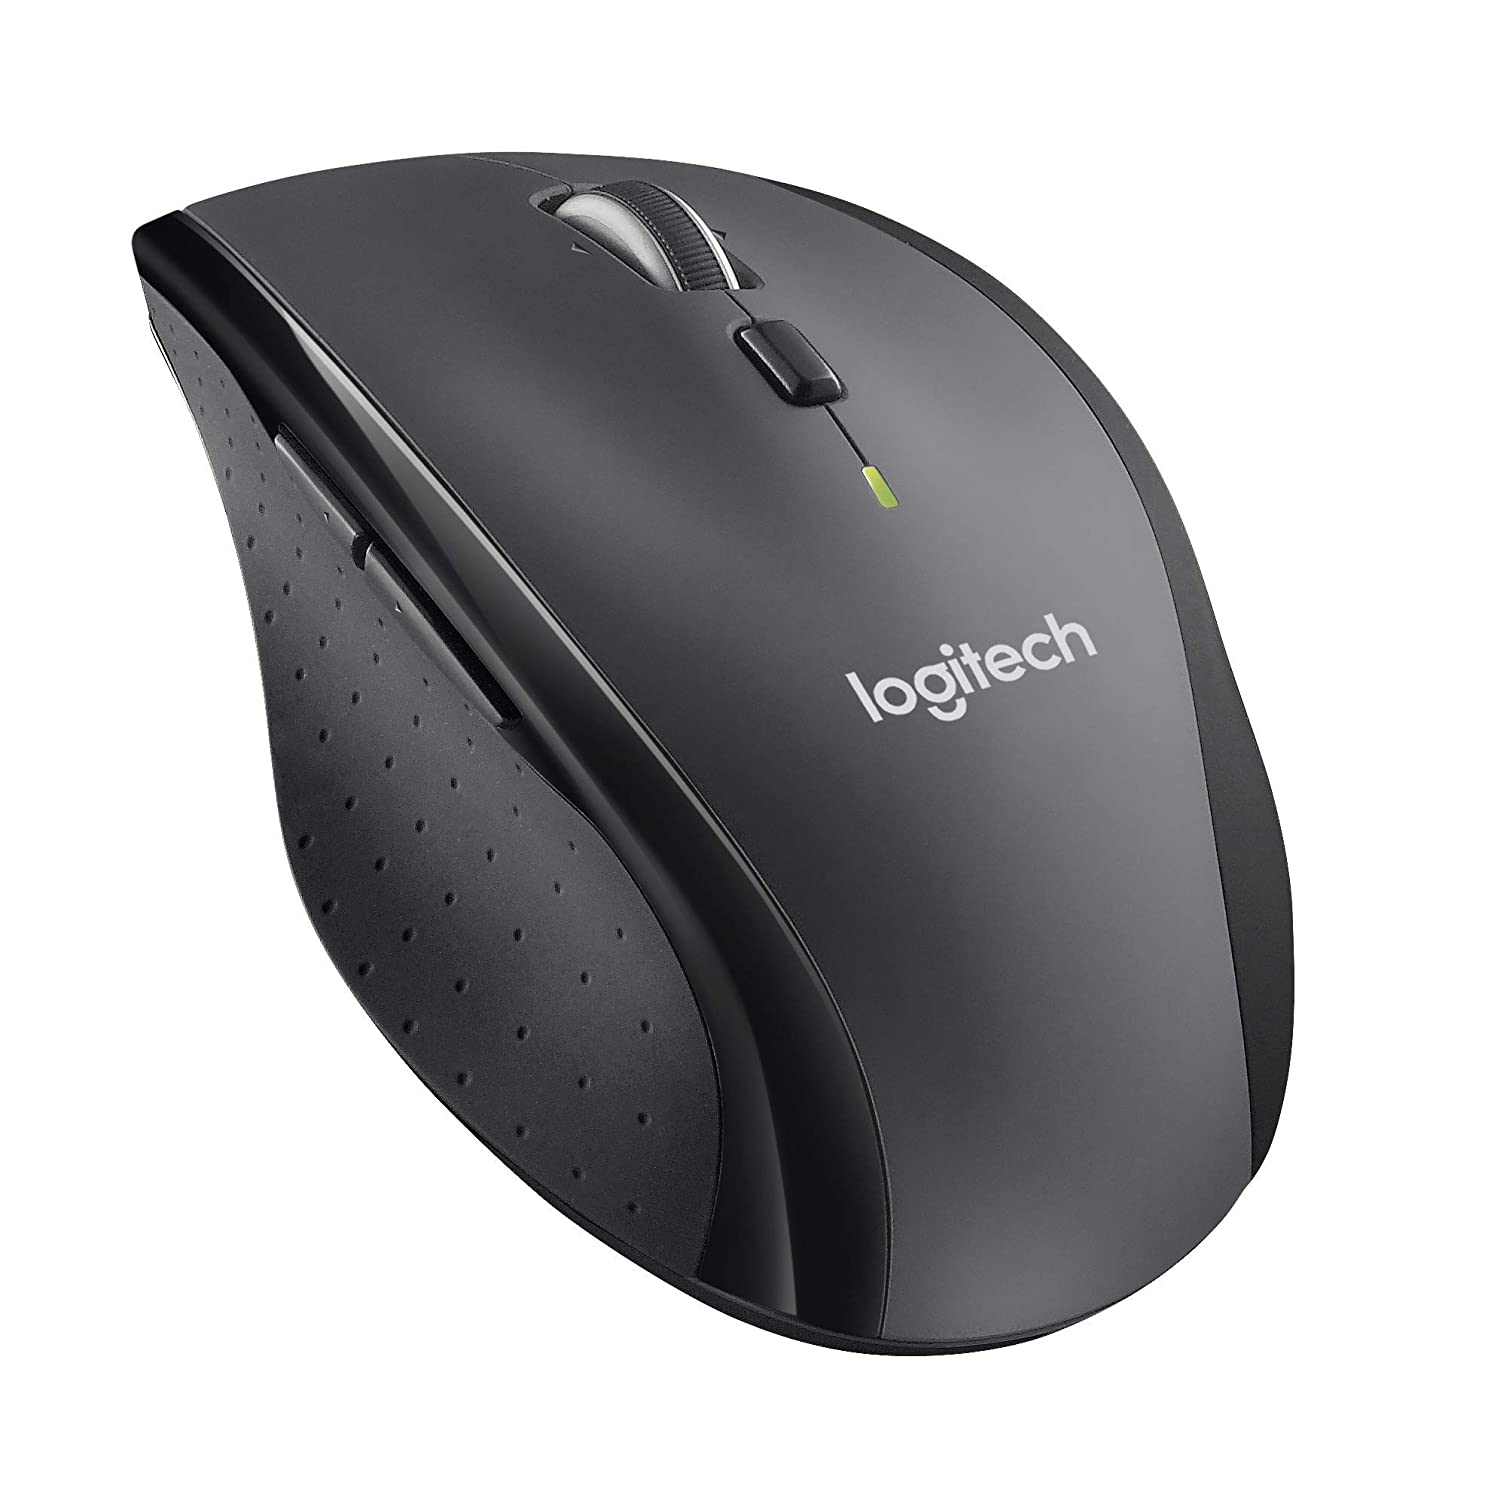 Logitech Wireless Marathon Mouse M705 with 3-Year Battery Life LOGOSHIRT 910-001935 Mice & Presentation Pointers